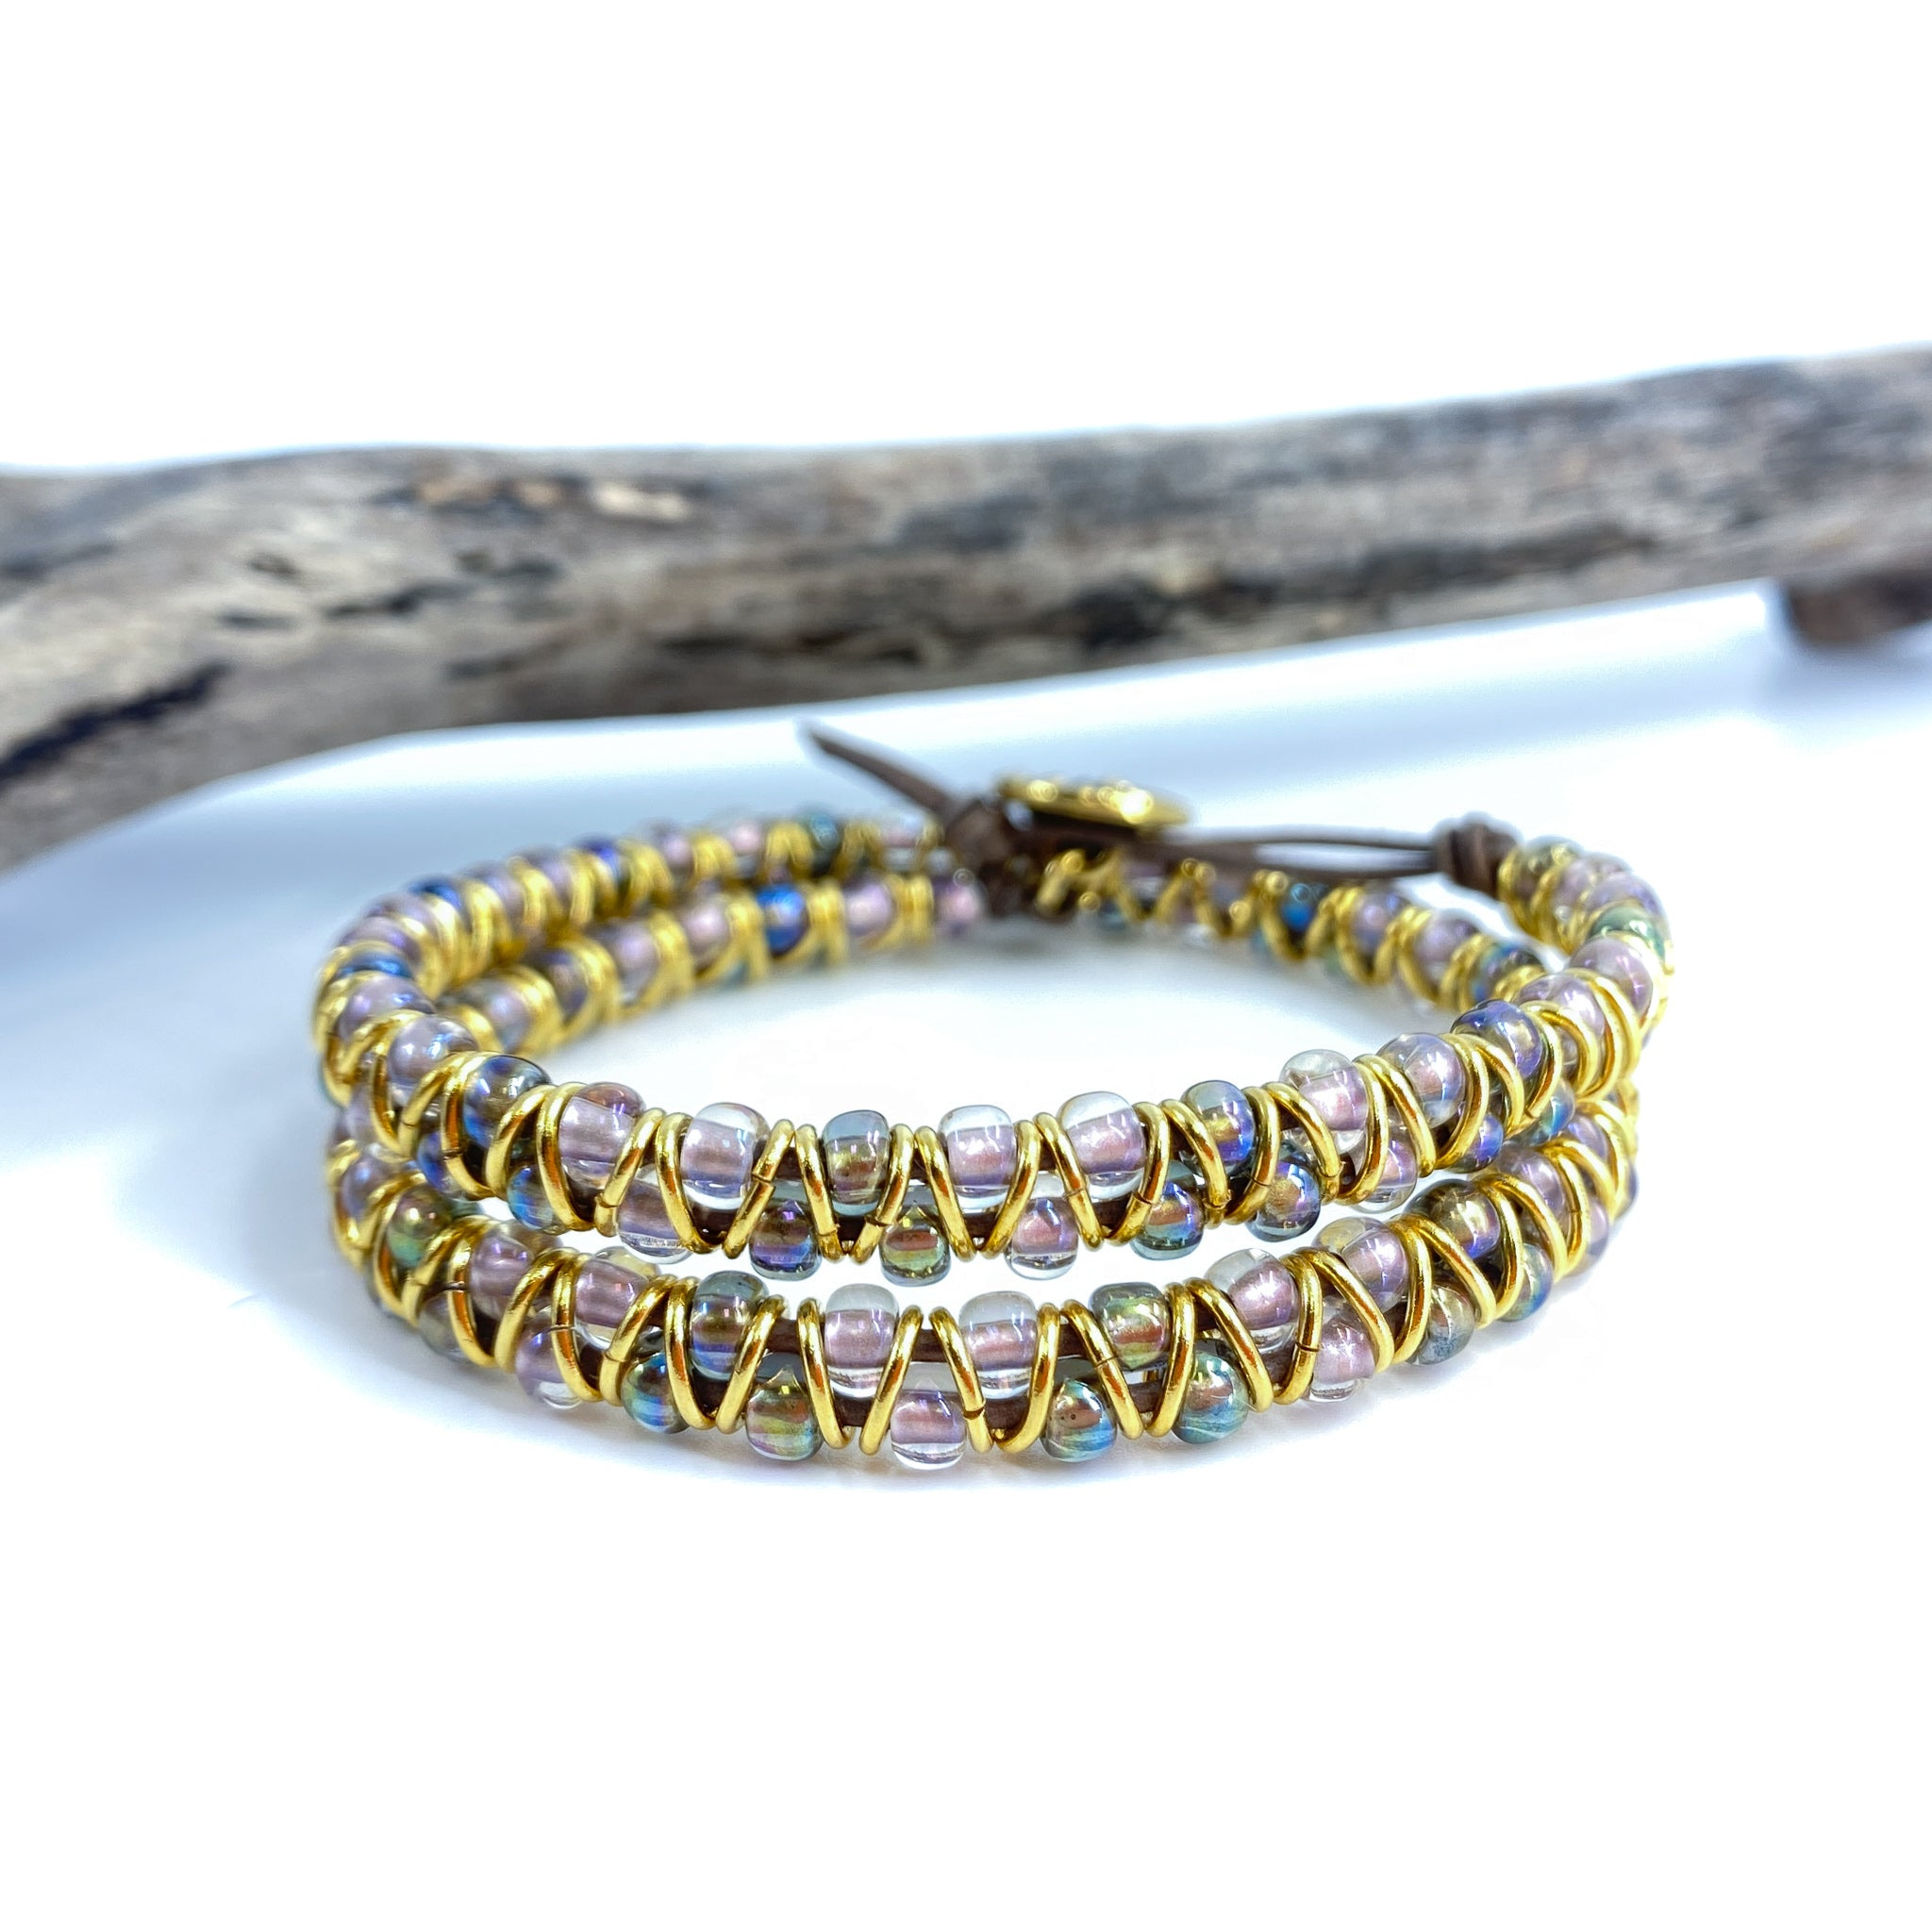 Hula Hoop Double Wrap Bracelet Kit